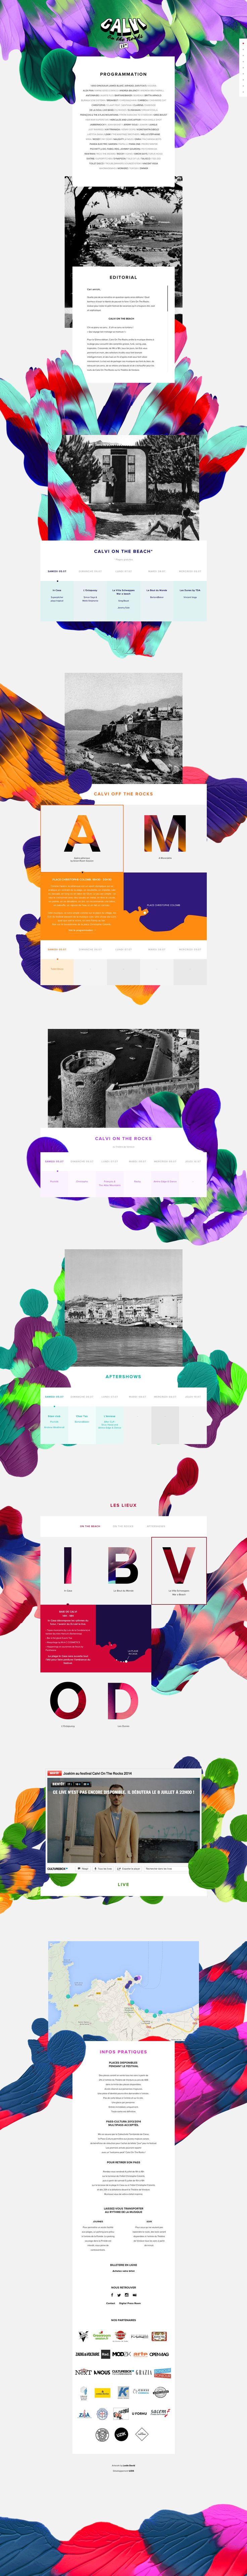 Unique Web Design, Calvi On The Rocks #WebDesign #Design